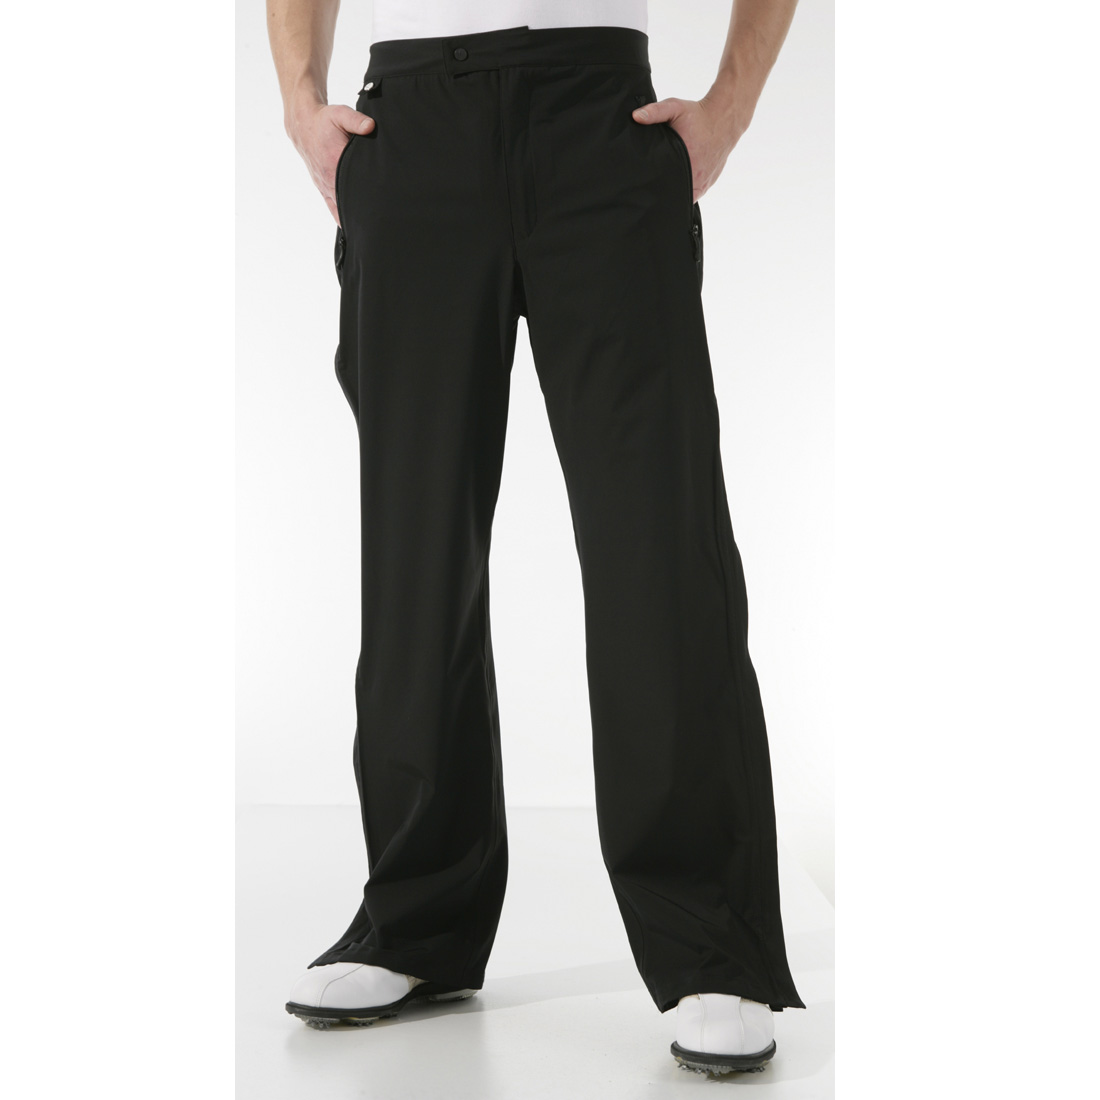 Mens New Stretch Rainproof Hose